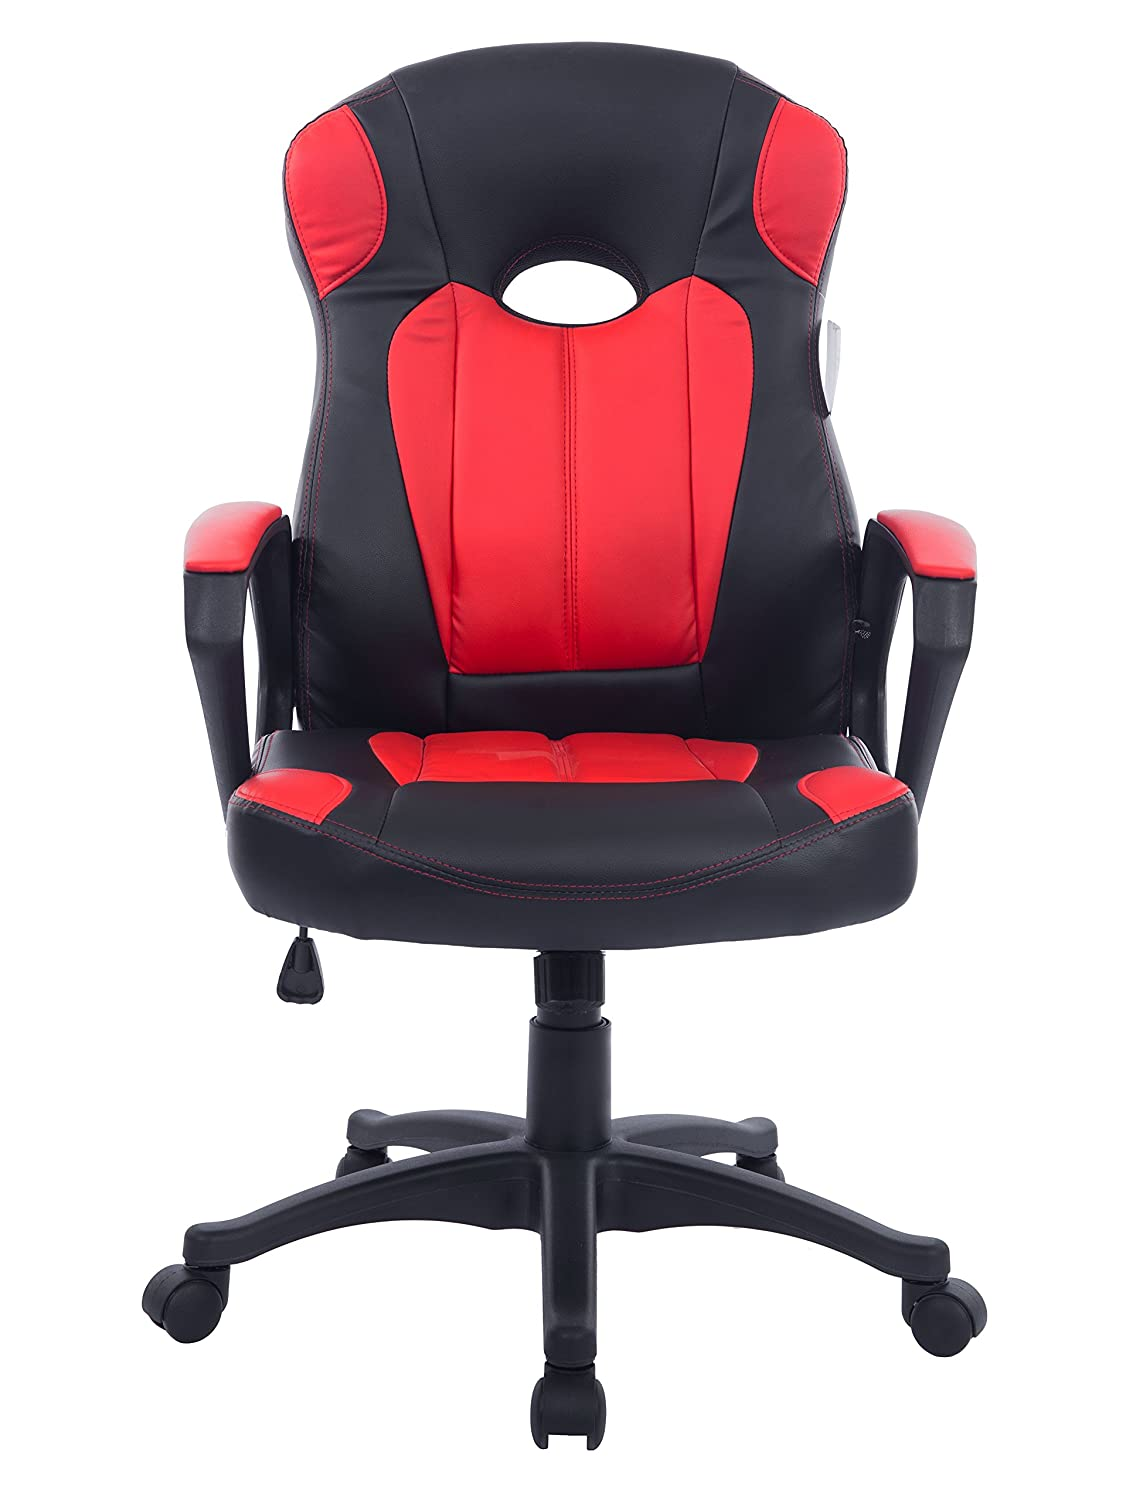 office chairs images. cherry tree racing gaming style pu leather swivel office chair in 2 colours red amazoncouk products chairs images v